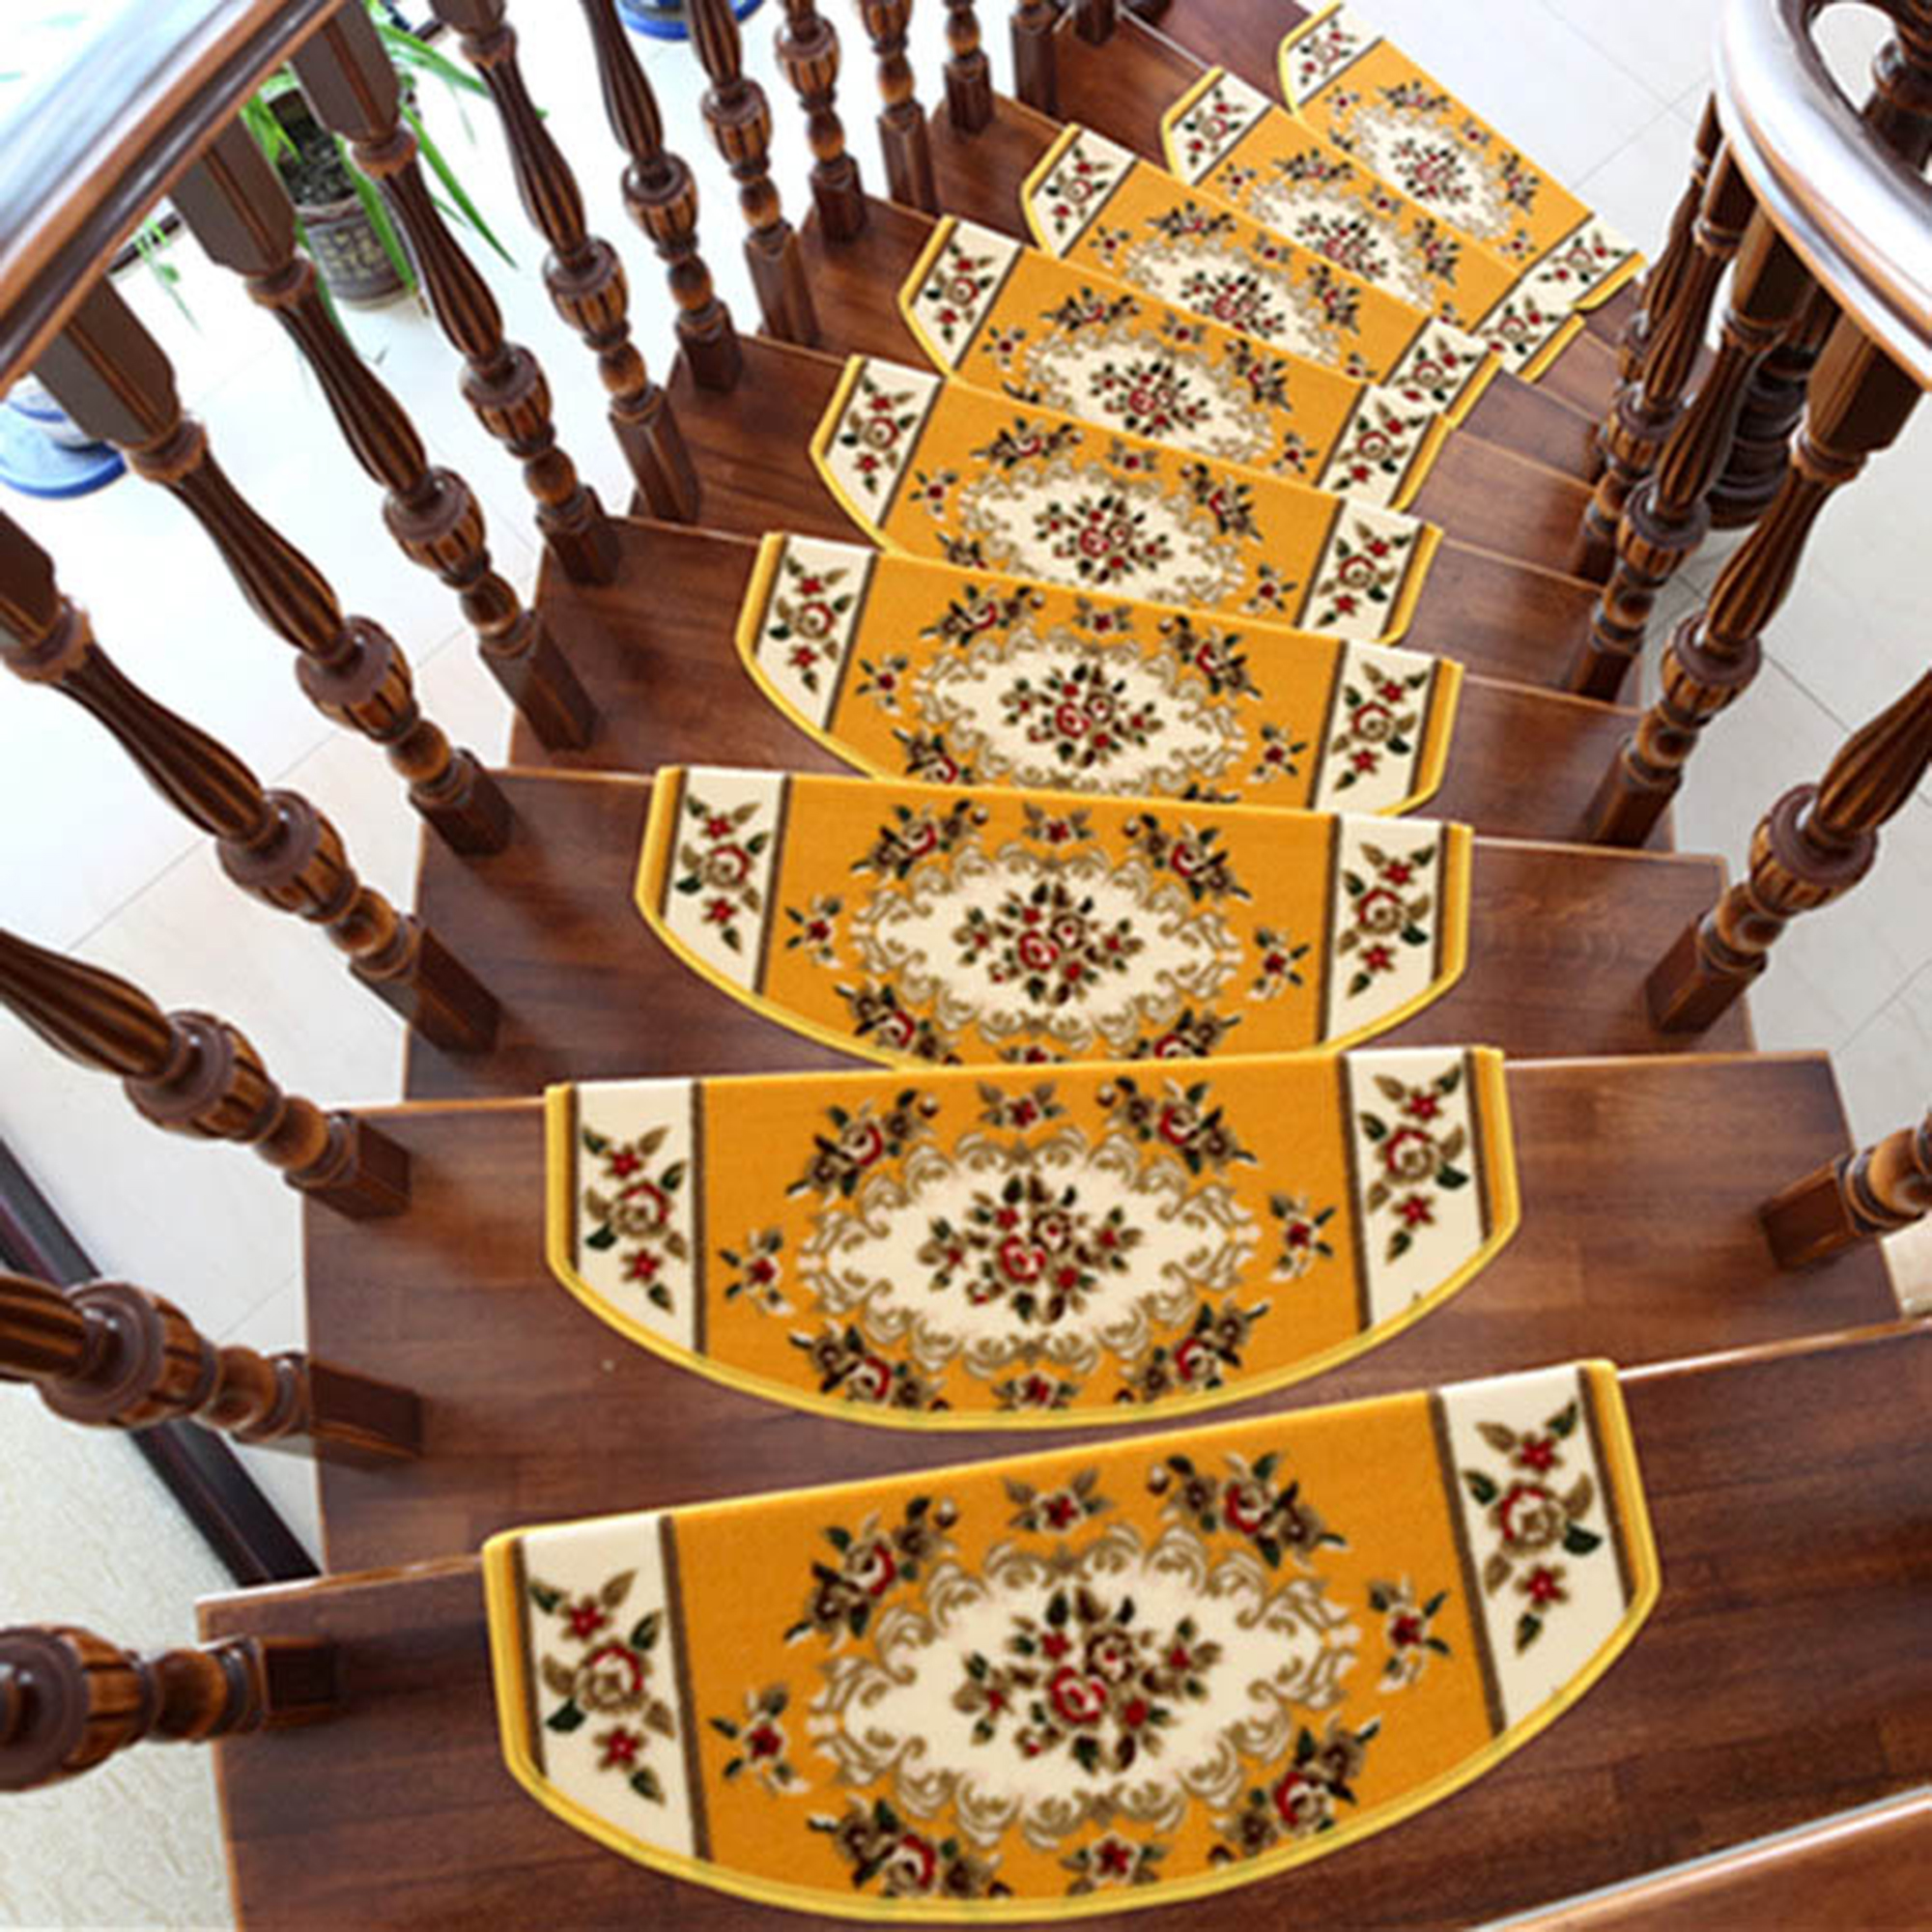 TINTON LIFE 13PCS Home Decor Area Rugs Blanket Anti-slip Stair Tread Carpet Floral Staircase, Yellow Arc